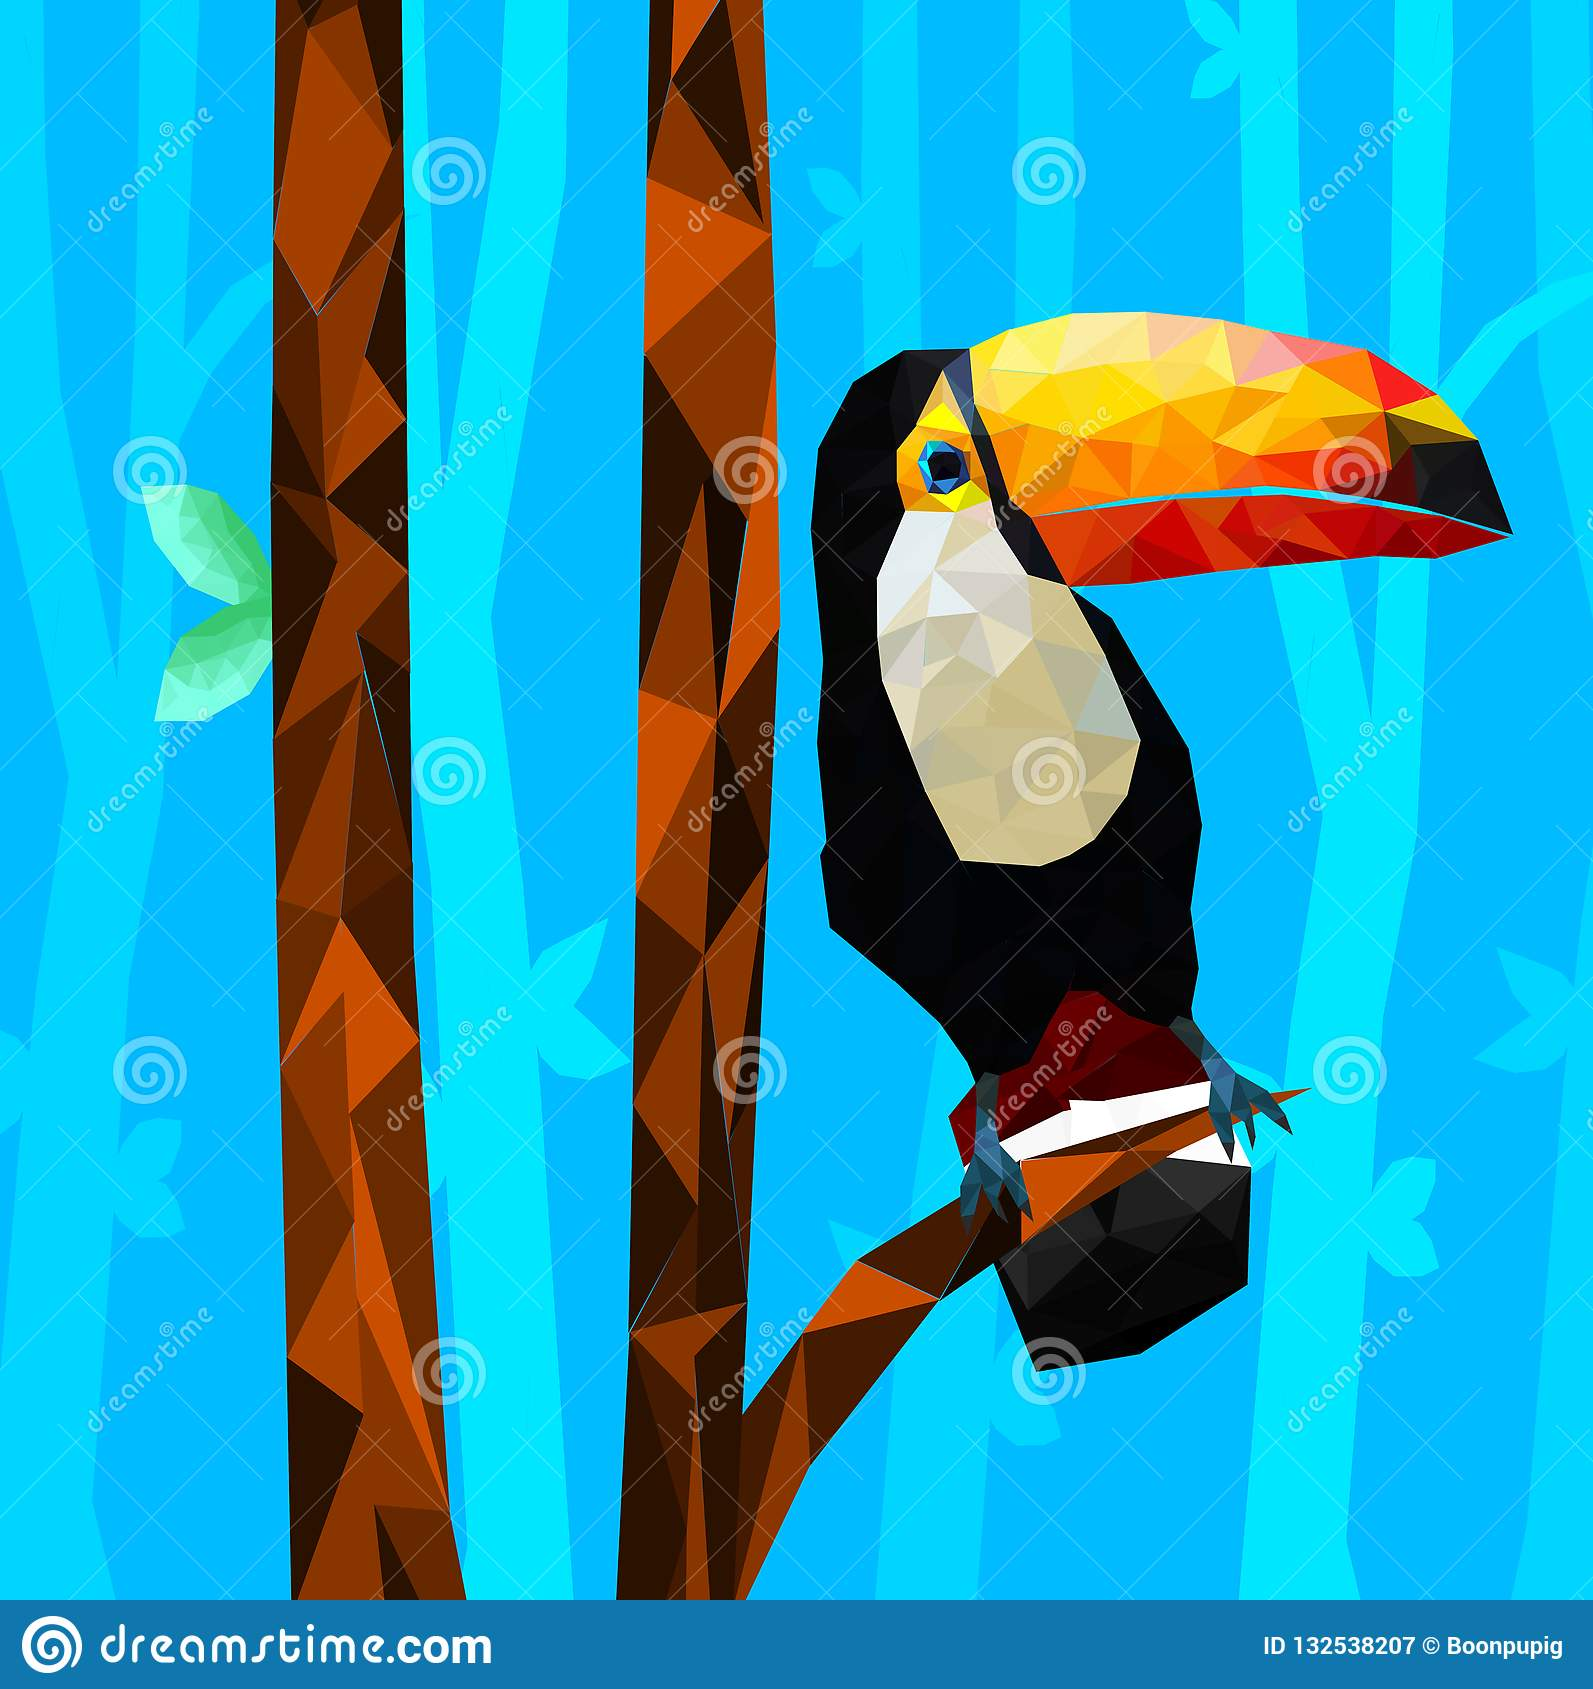 Low Poly Colorful Toucan Bird With Tree On Back Ground